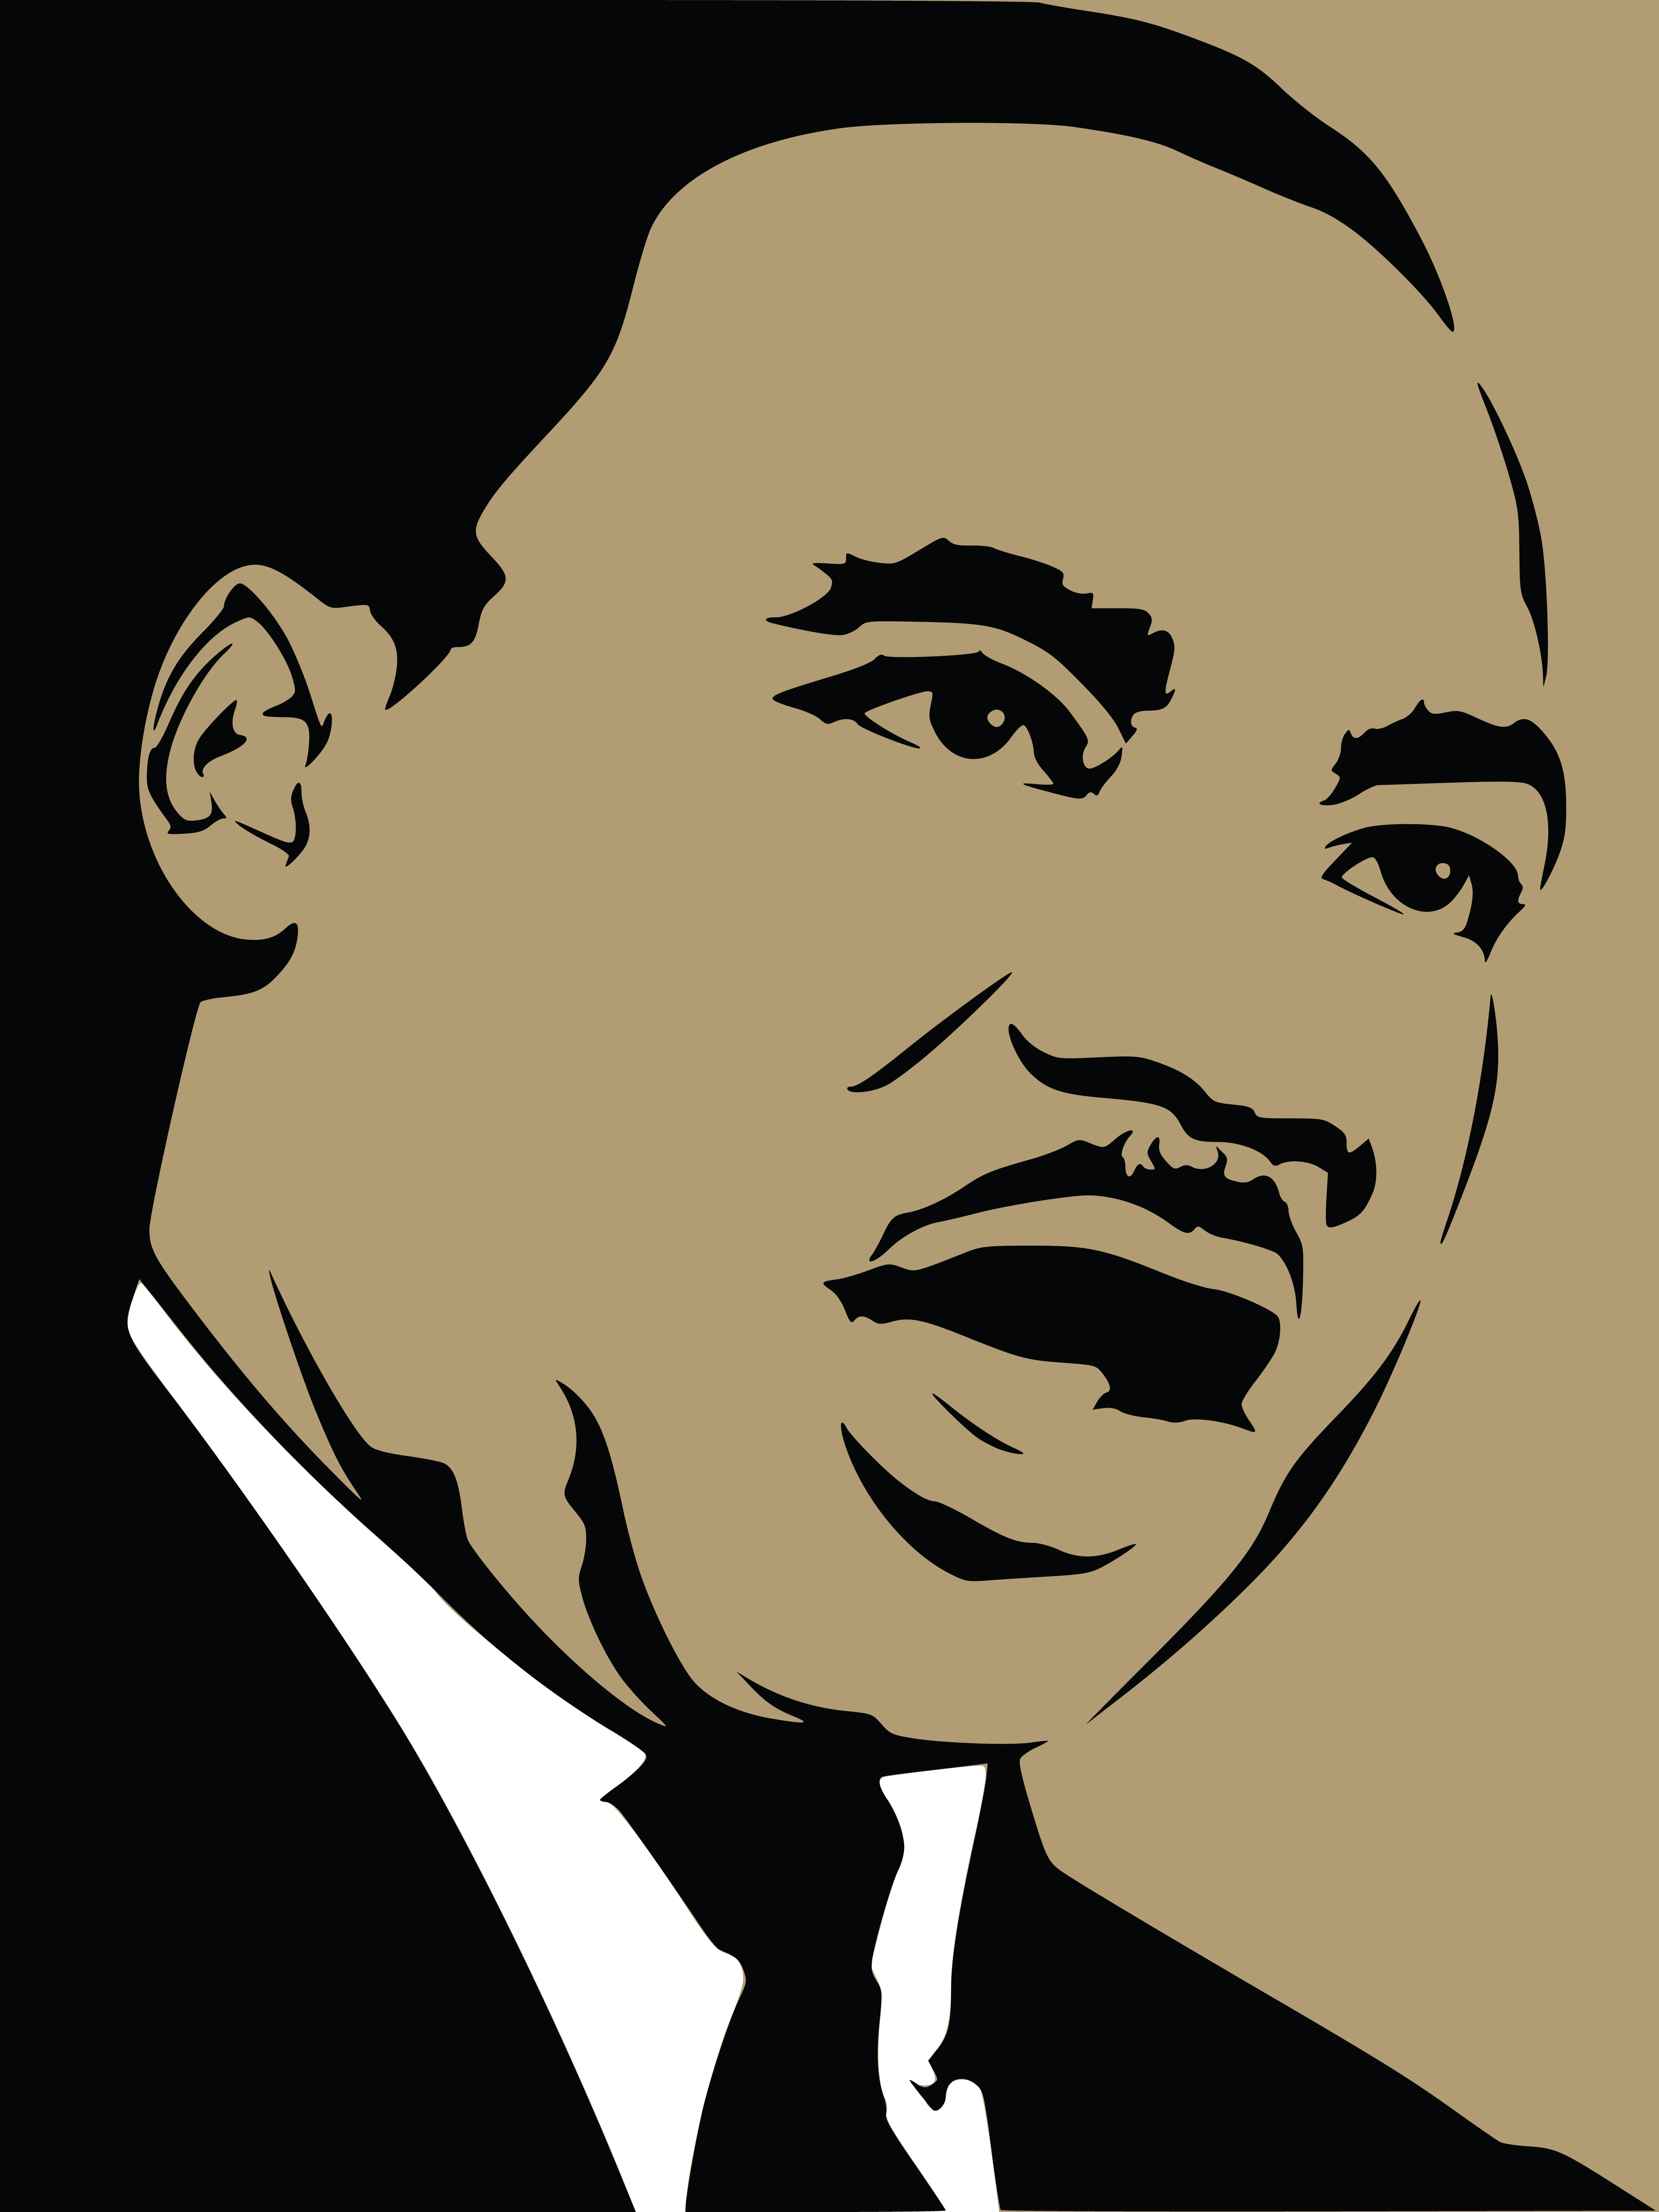 free clipart of martin luther king jr rh free clipartof com martin luther king jr clipart free martin luther king jr clipart black and white